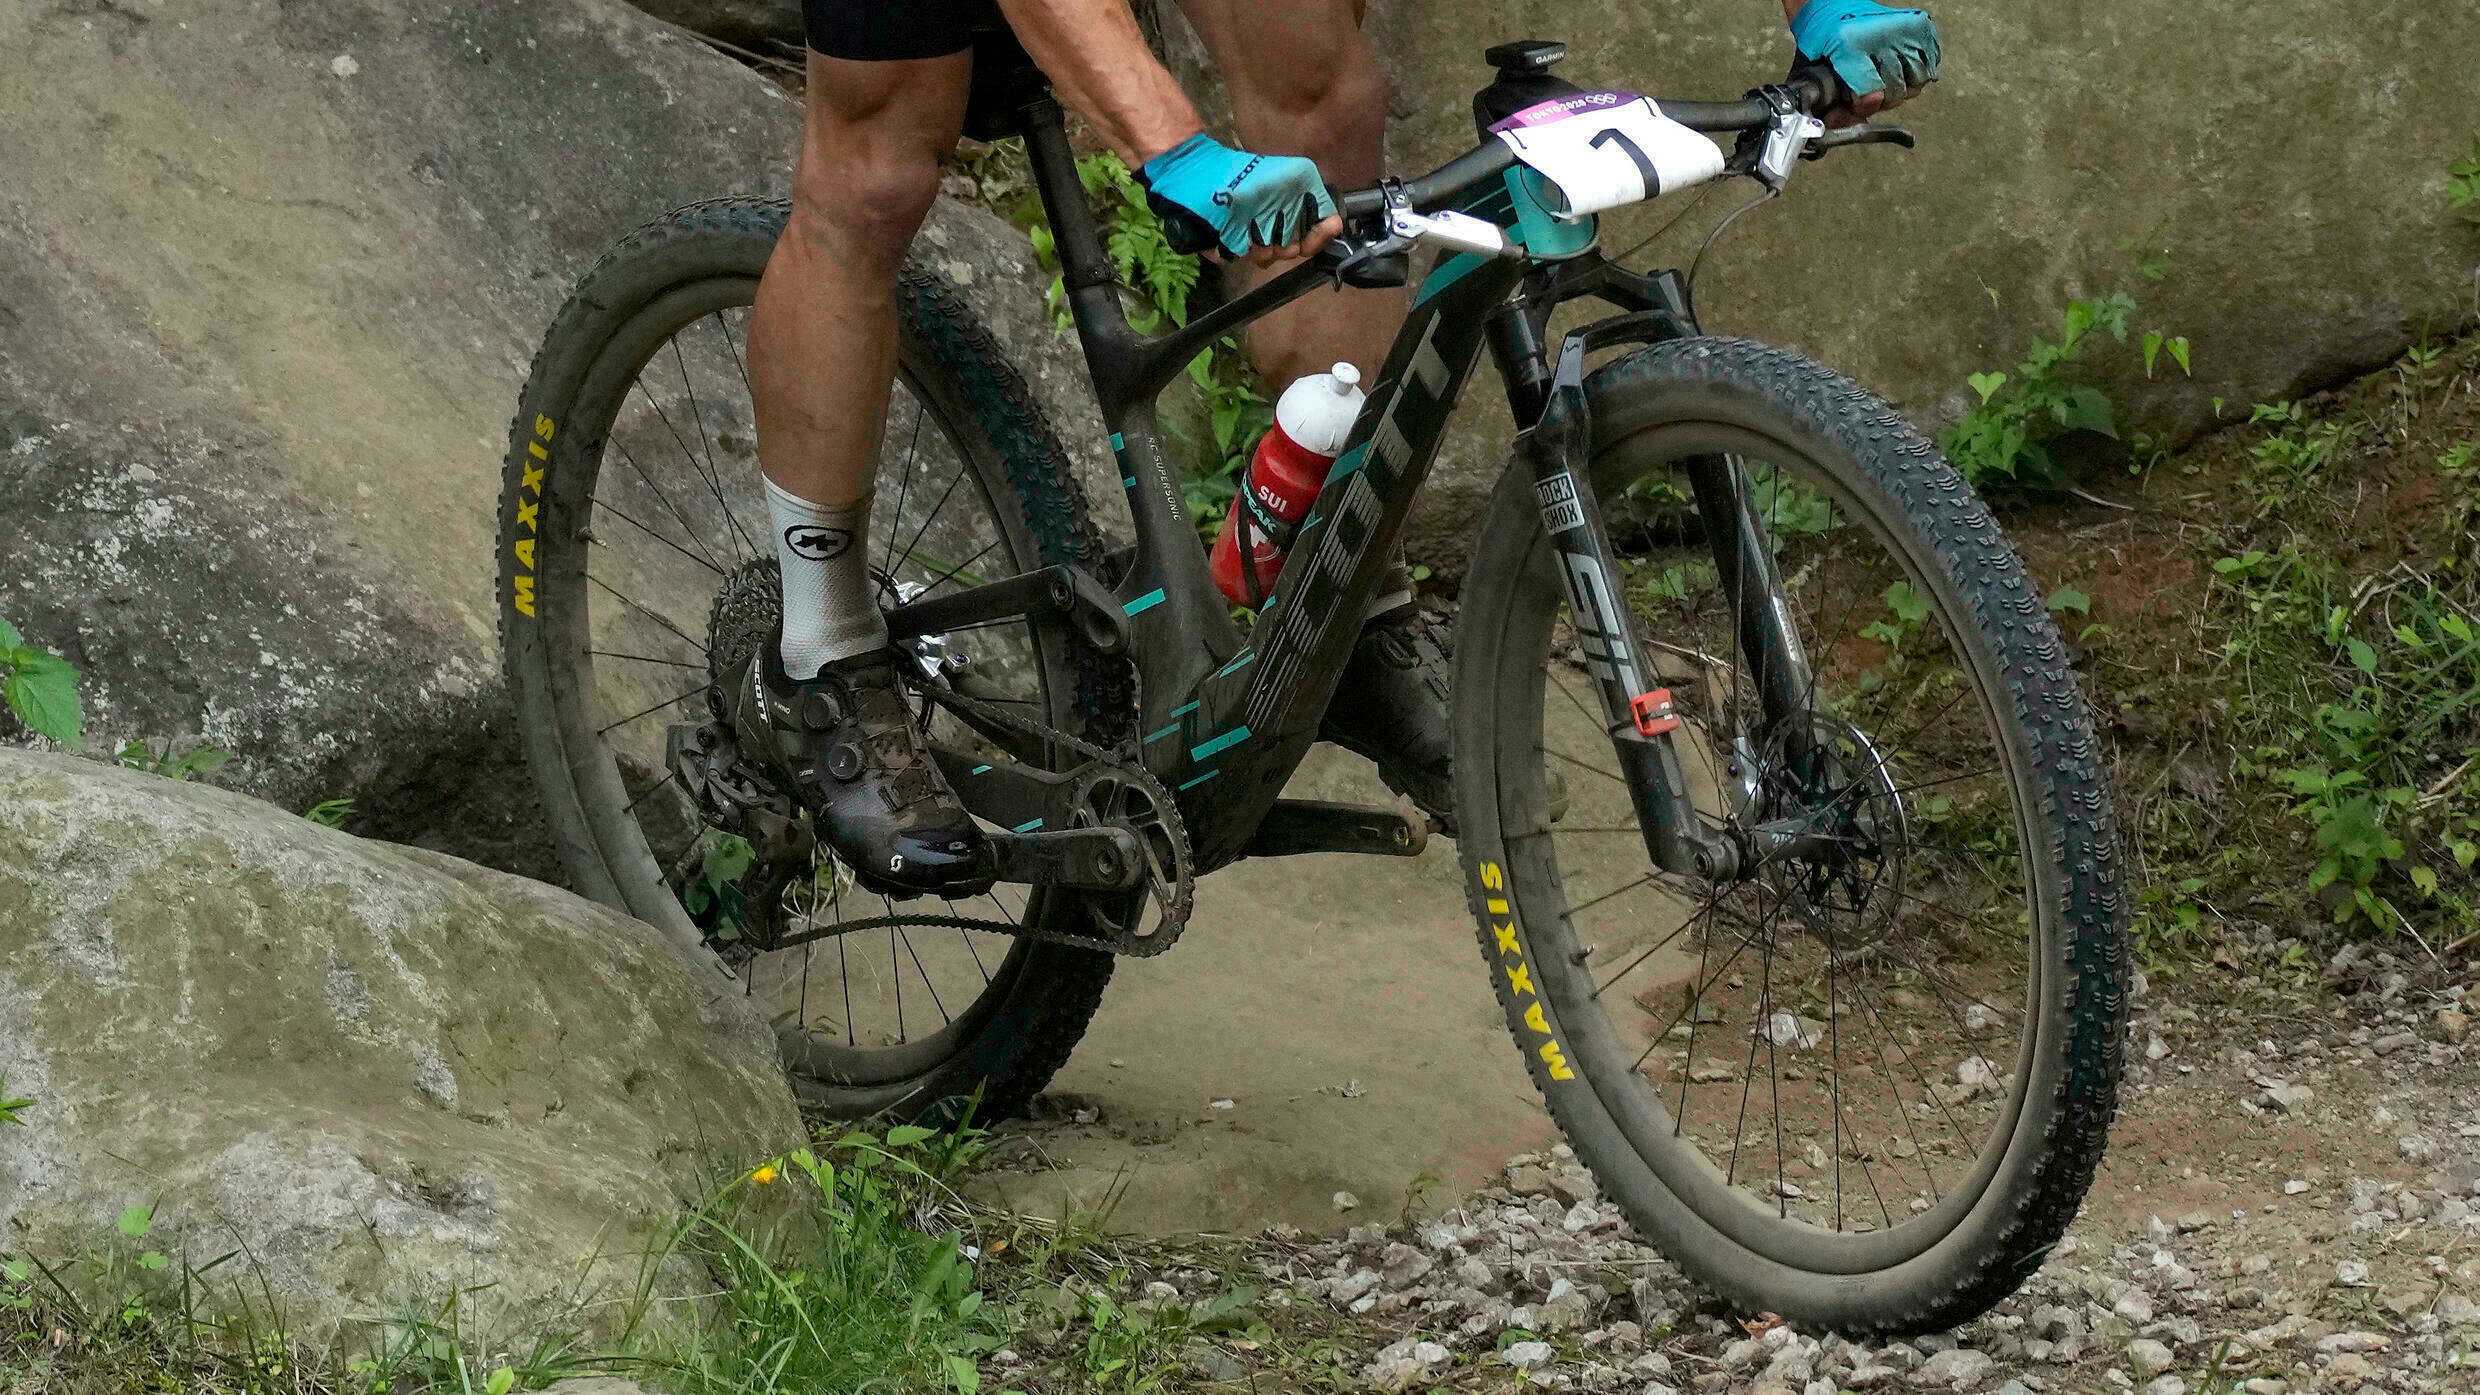 The photo was taken during a mountain biking event at the Tokyo Olympics on July 26, 2021.